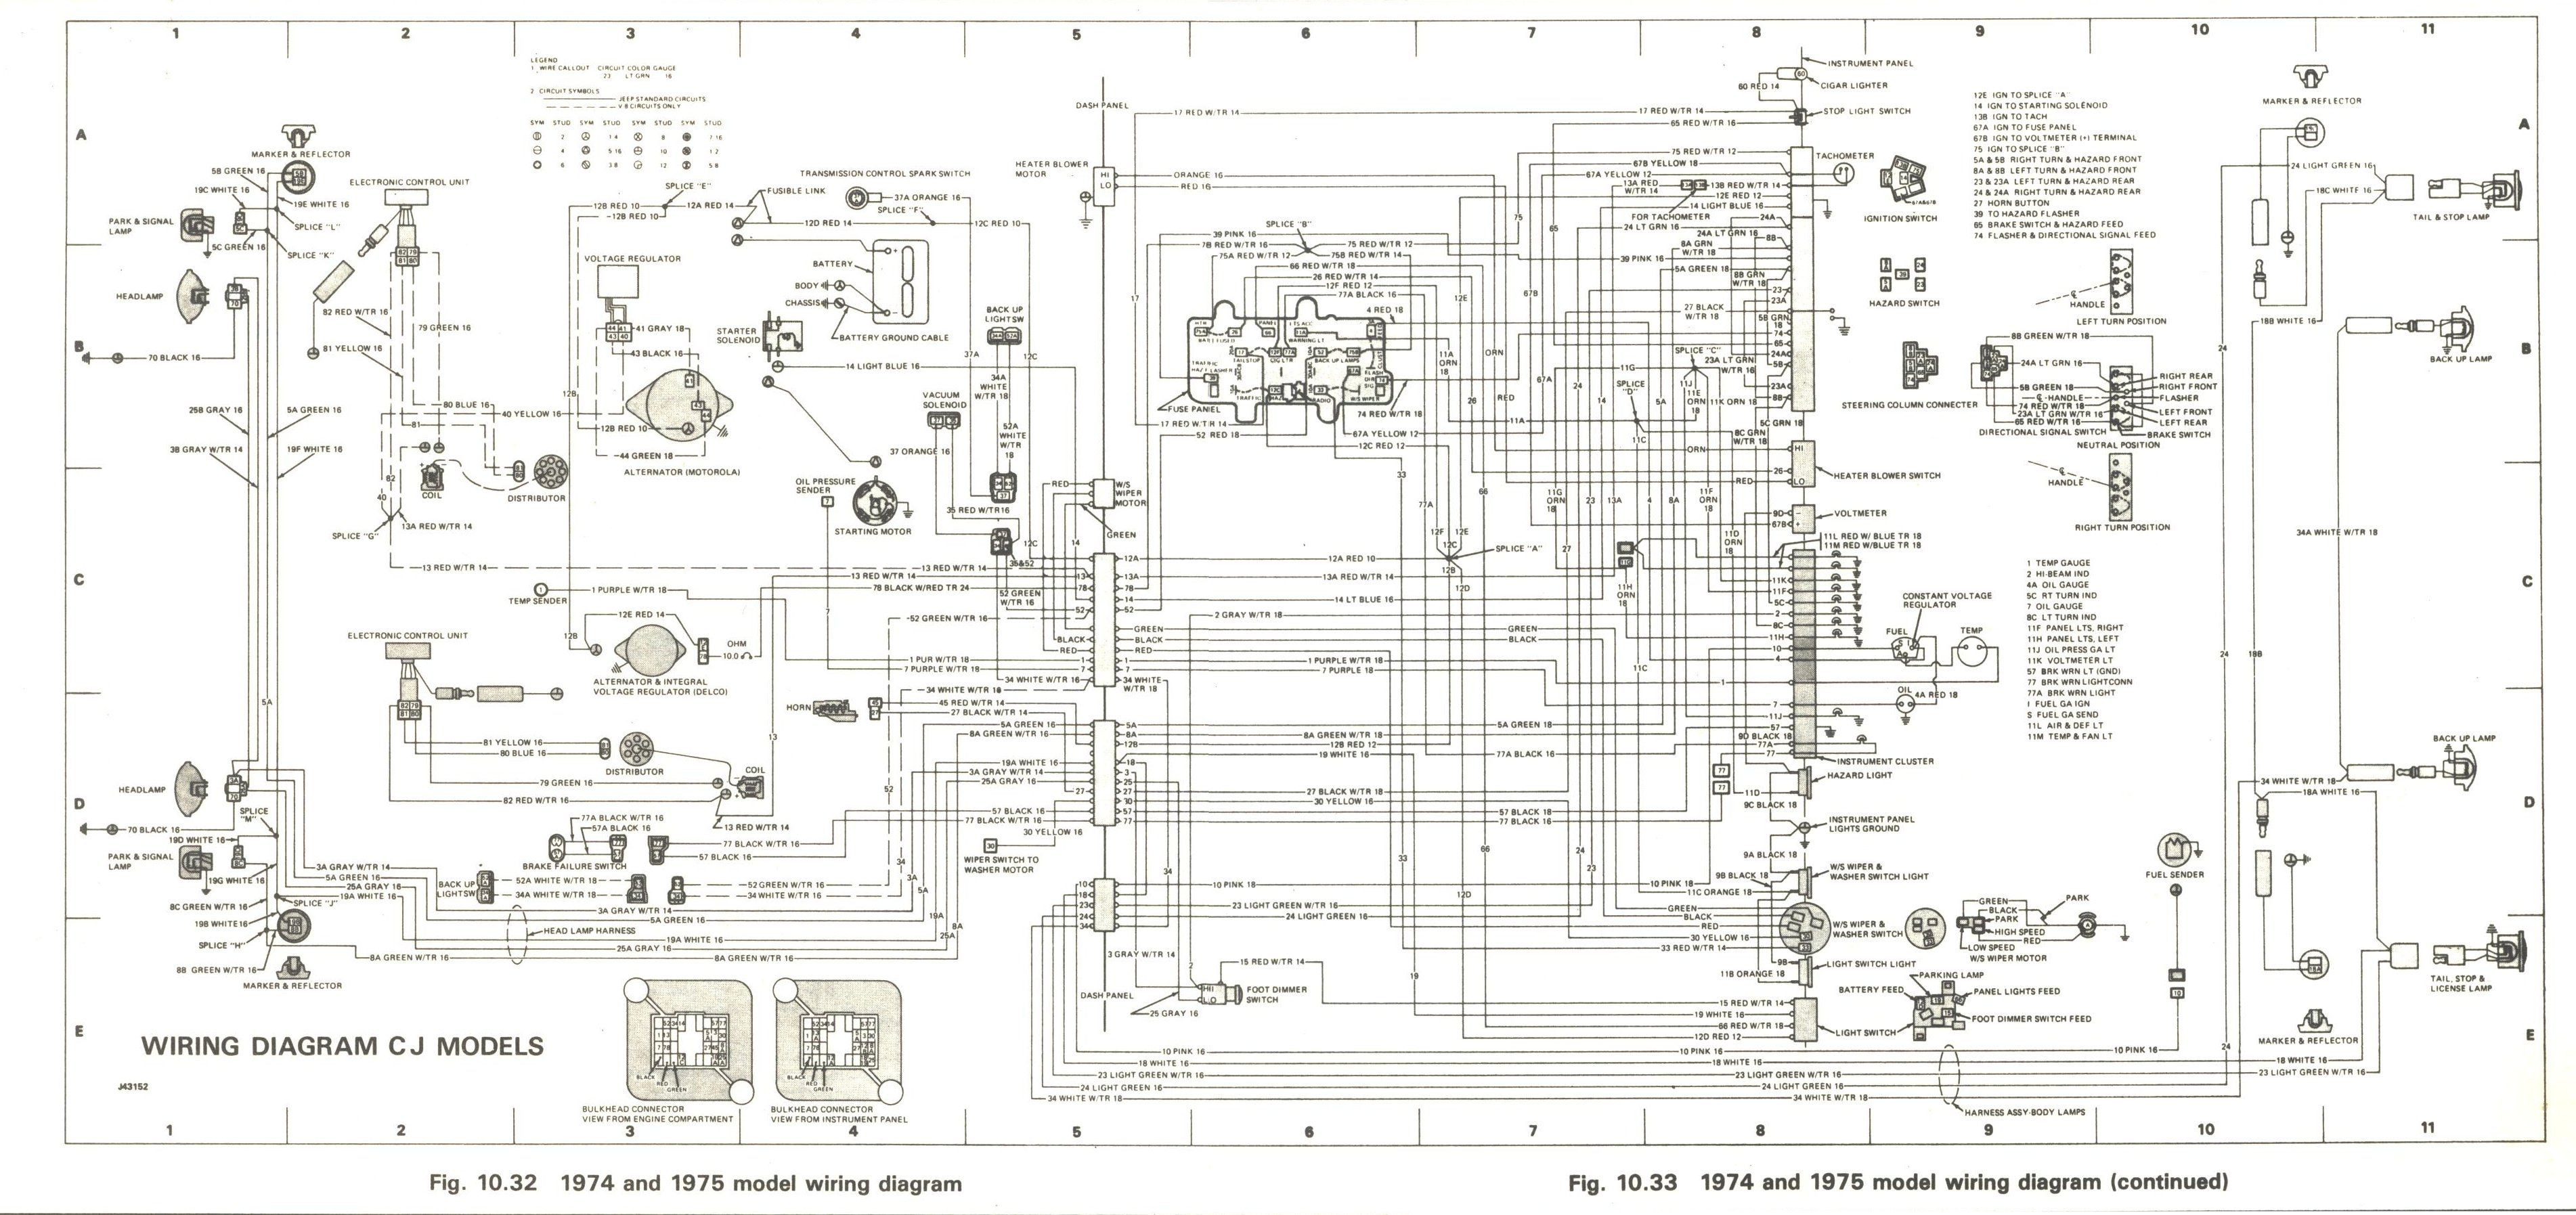 1980 jeep wiring diagram wiring diagram dat jeep cj7 wiringdiagram 1980 jeep cj7 wiringdiagram 1981 jeep cj7 [ 3805 x 1795 Pixel ]